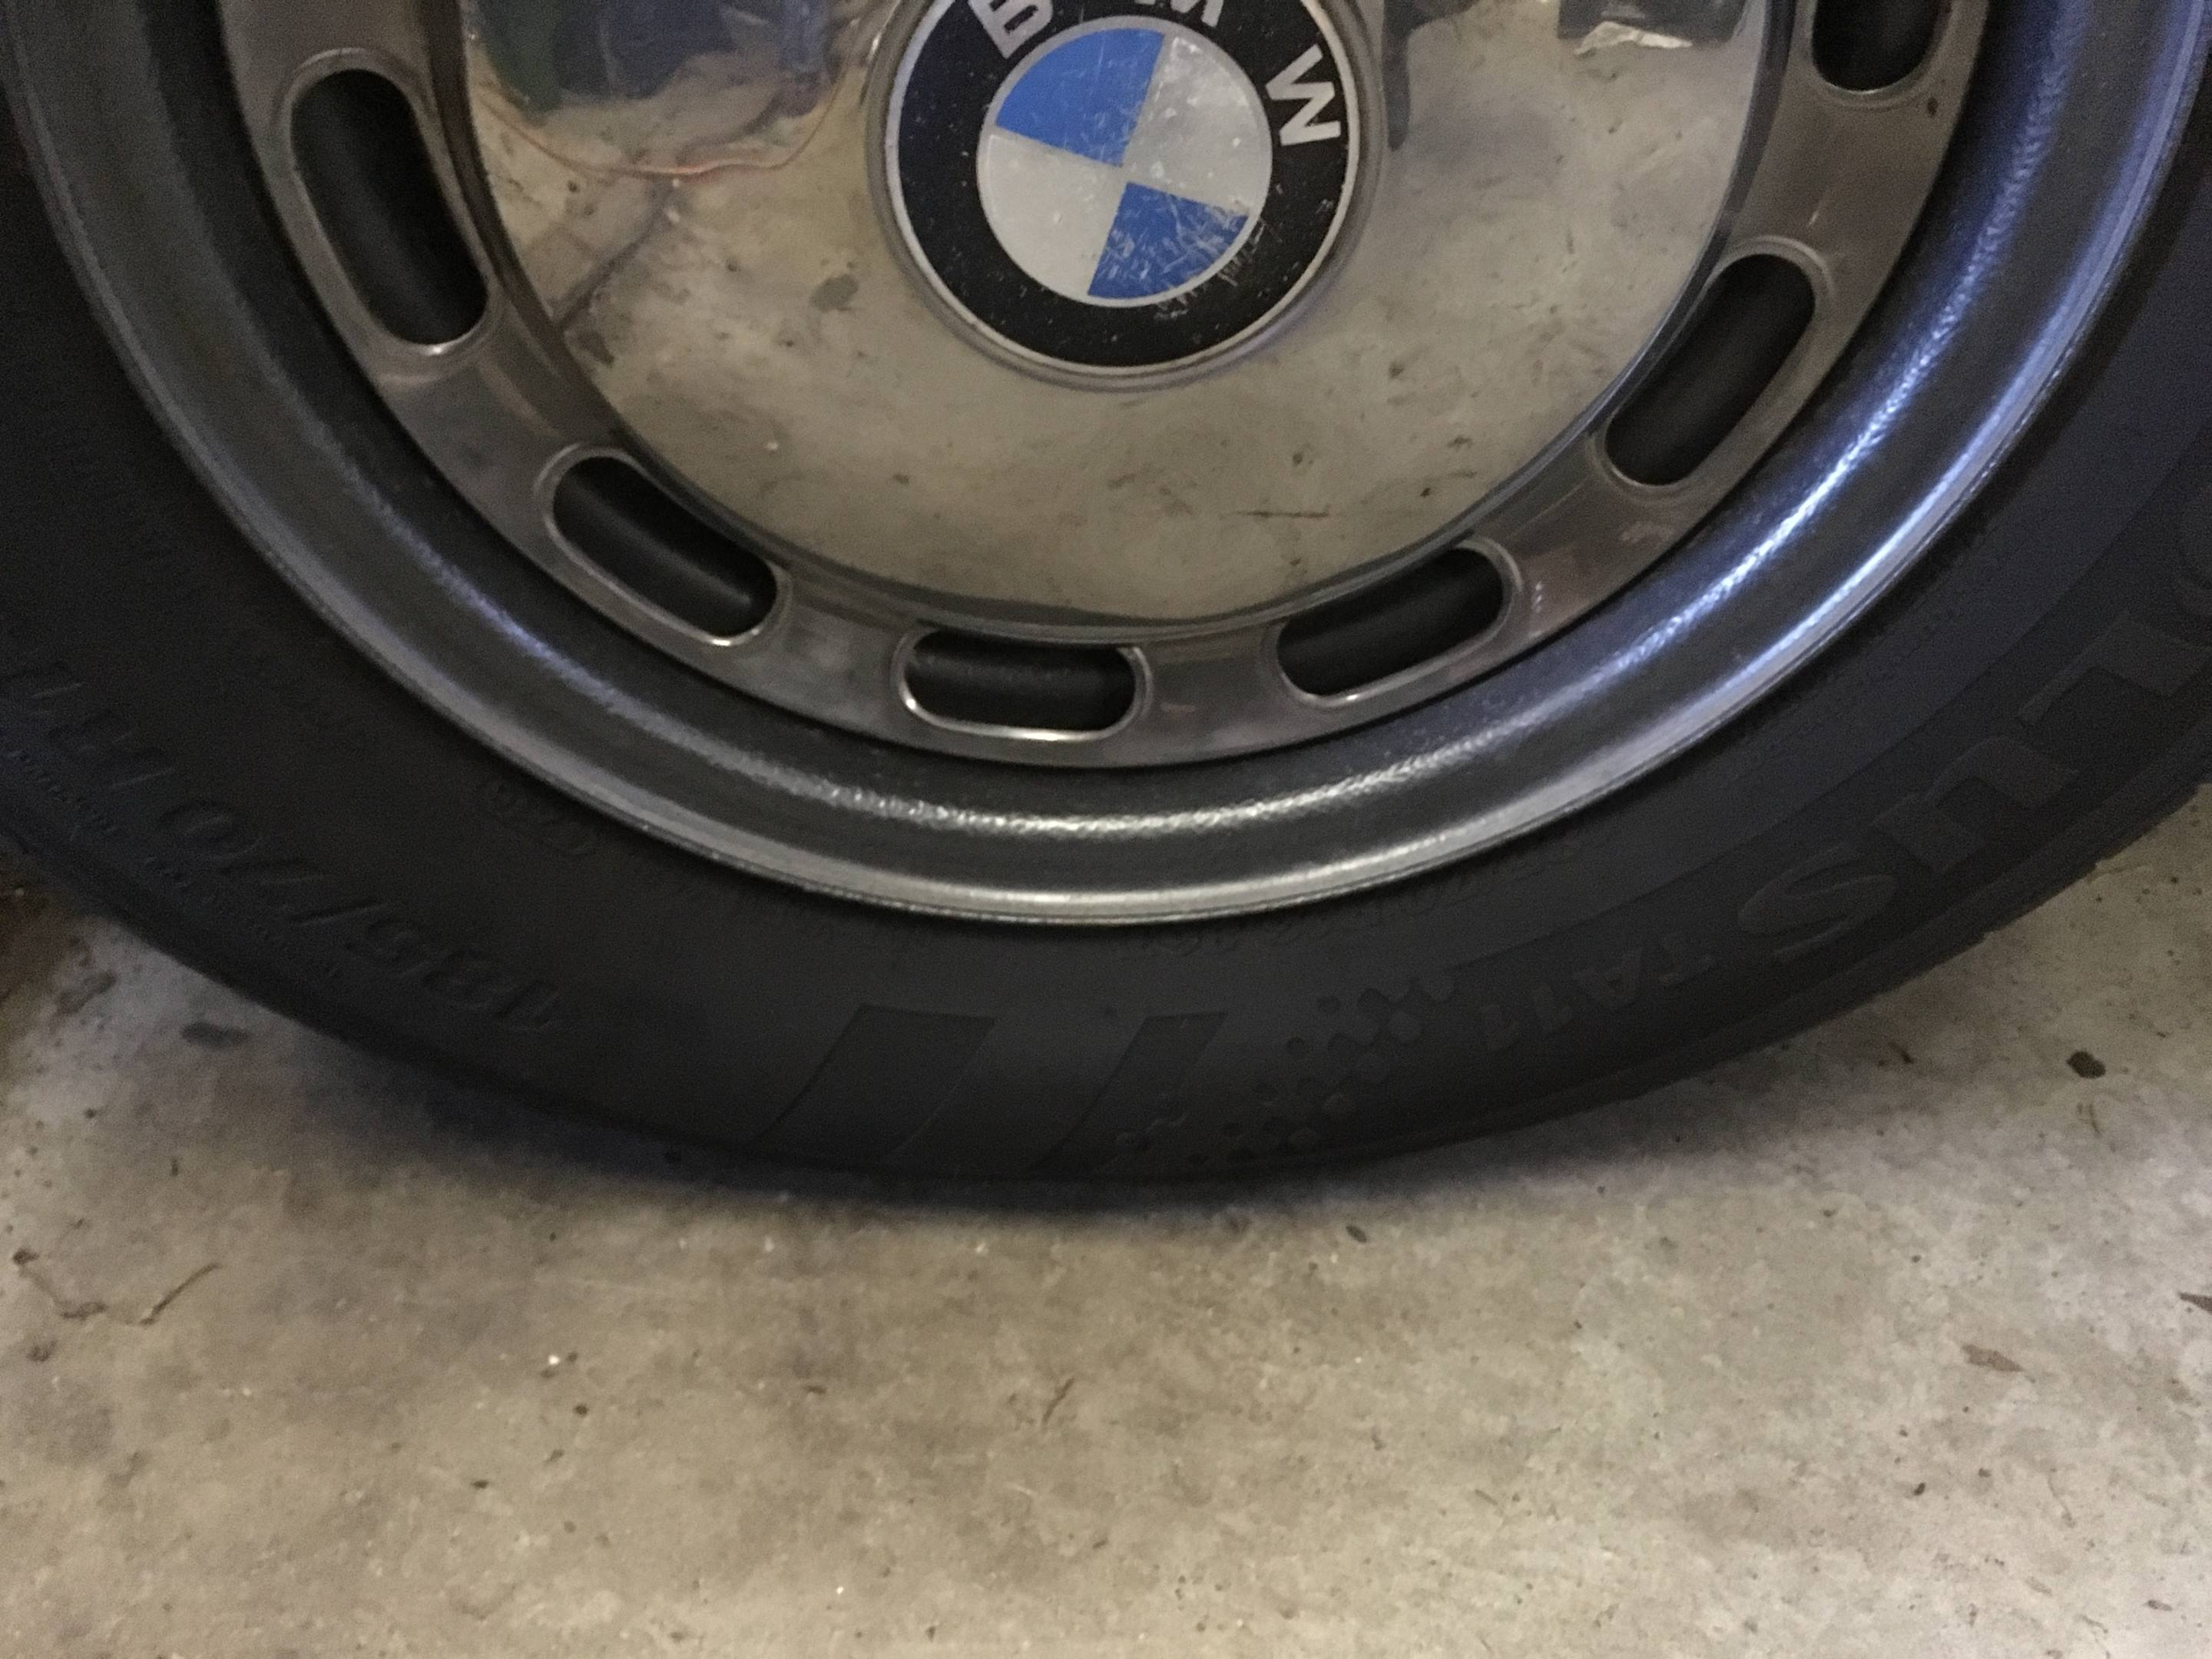 Tires do get flat-spotted. If possible, move the car every few months.